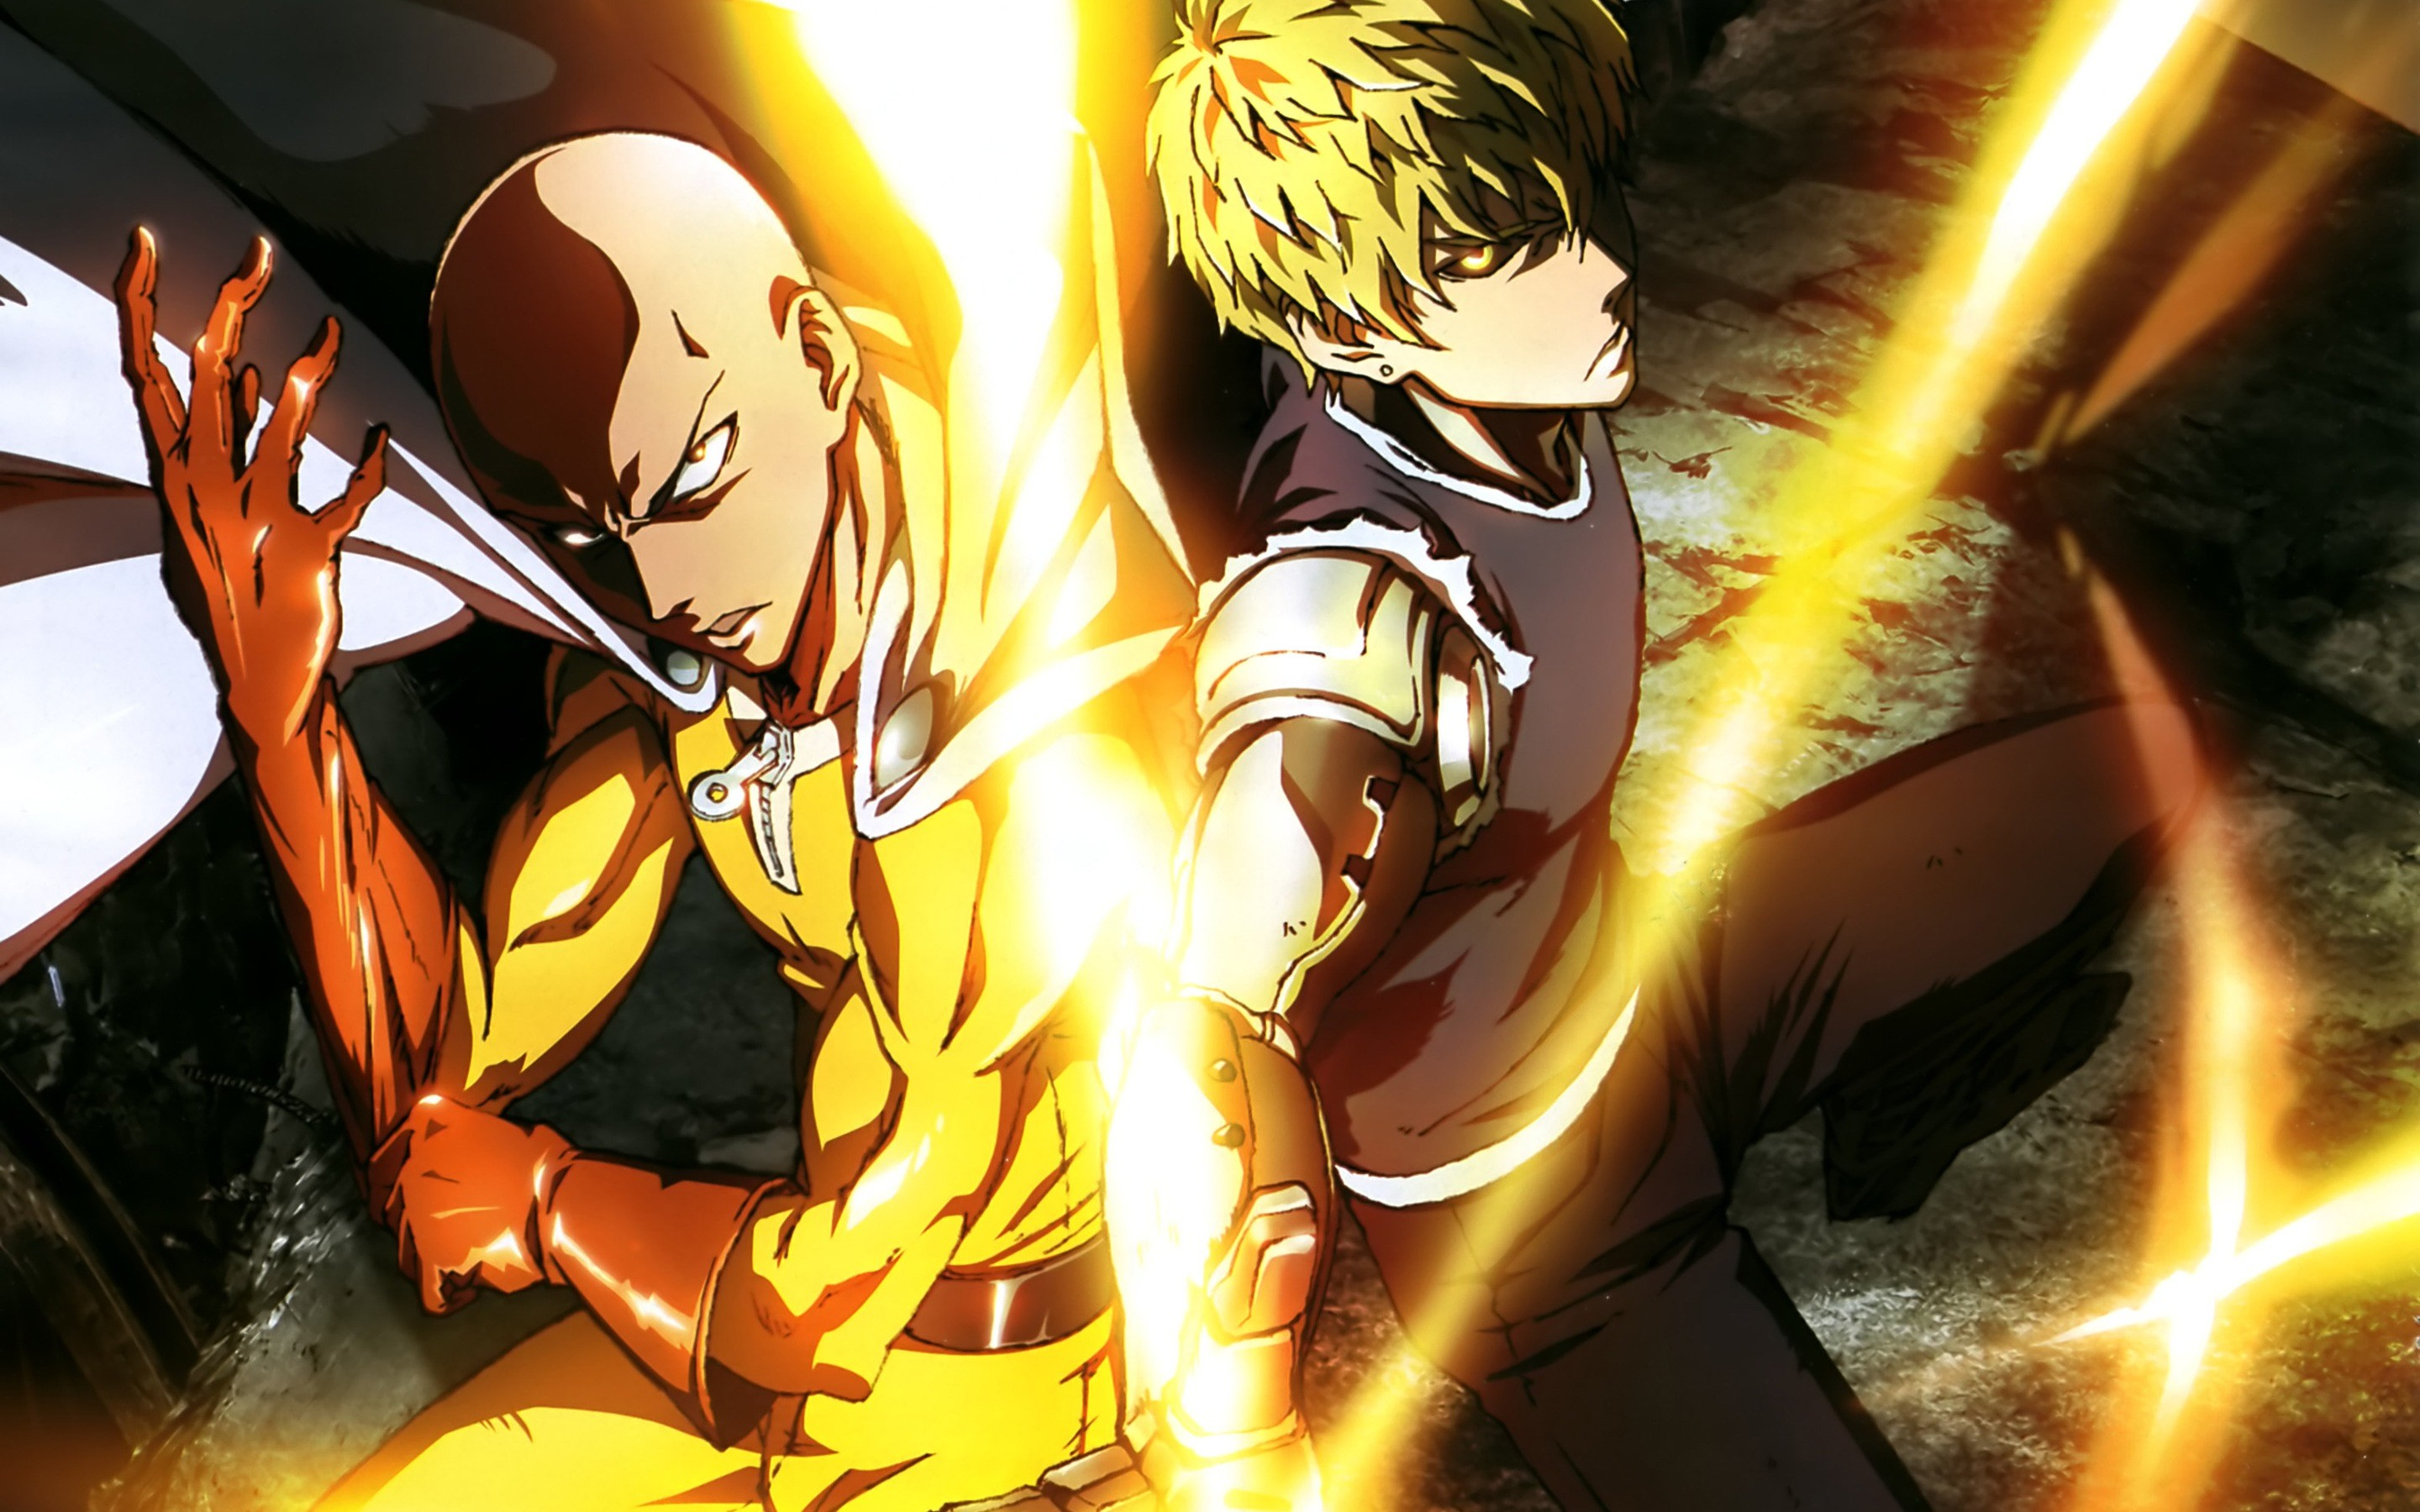 E Punch Man HD Wallpaper 72 Images